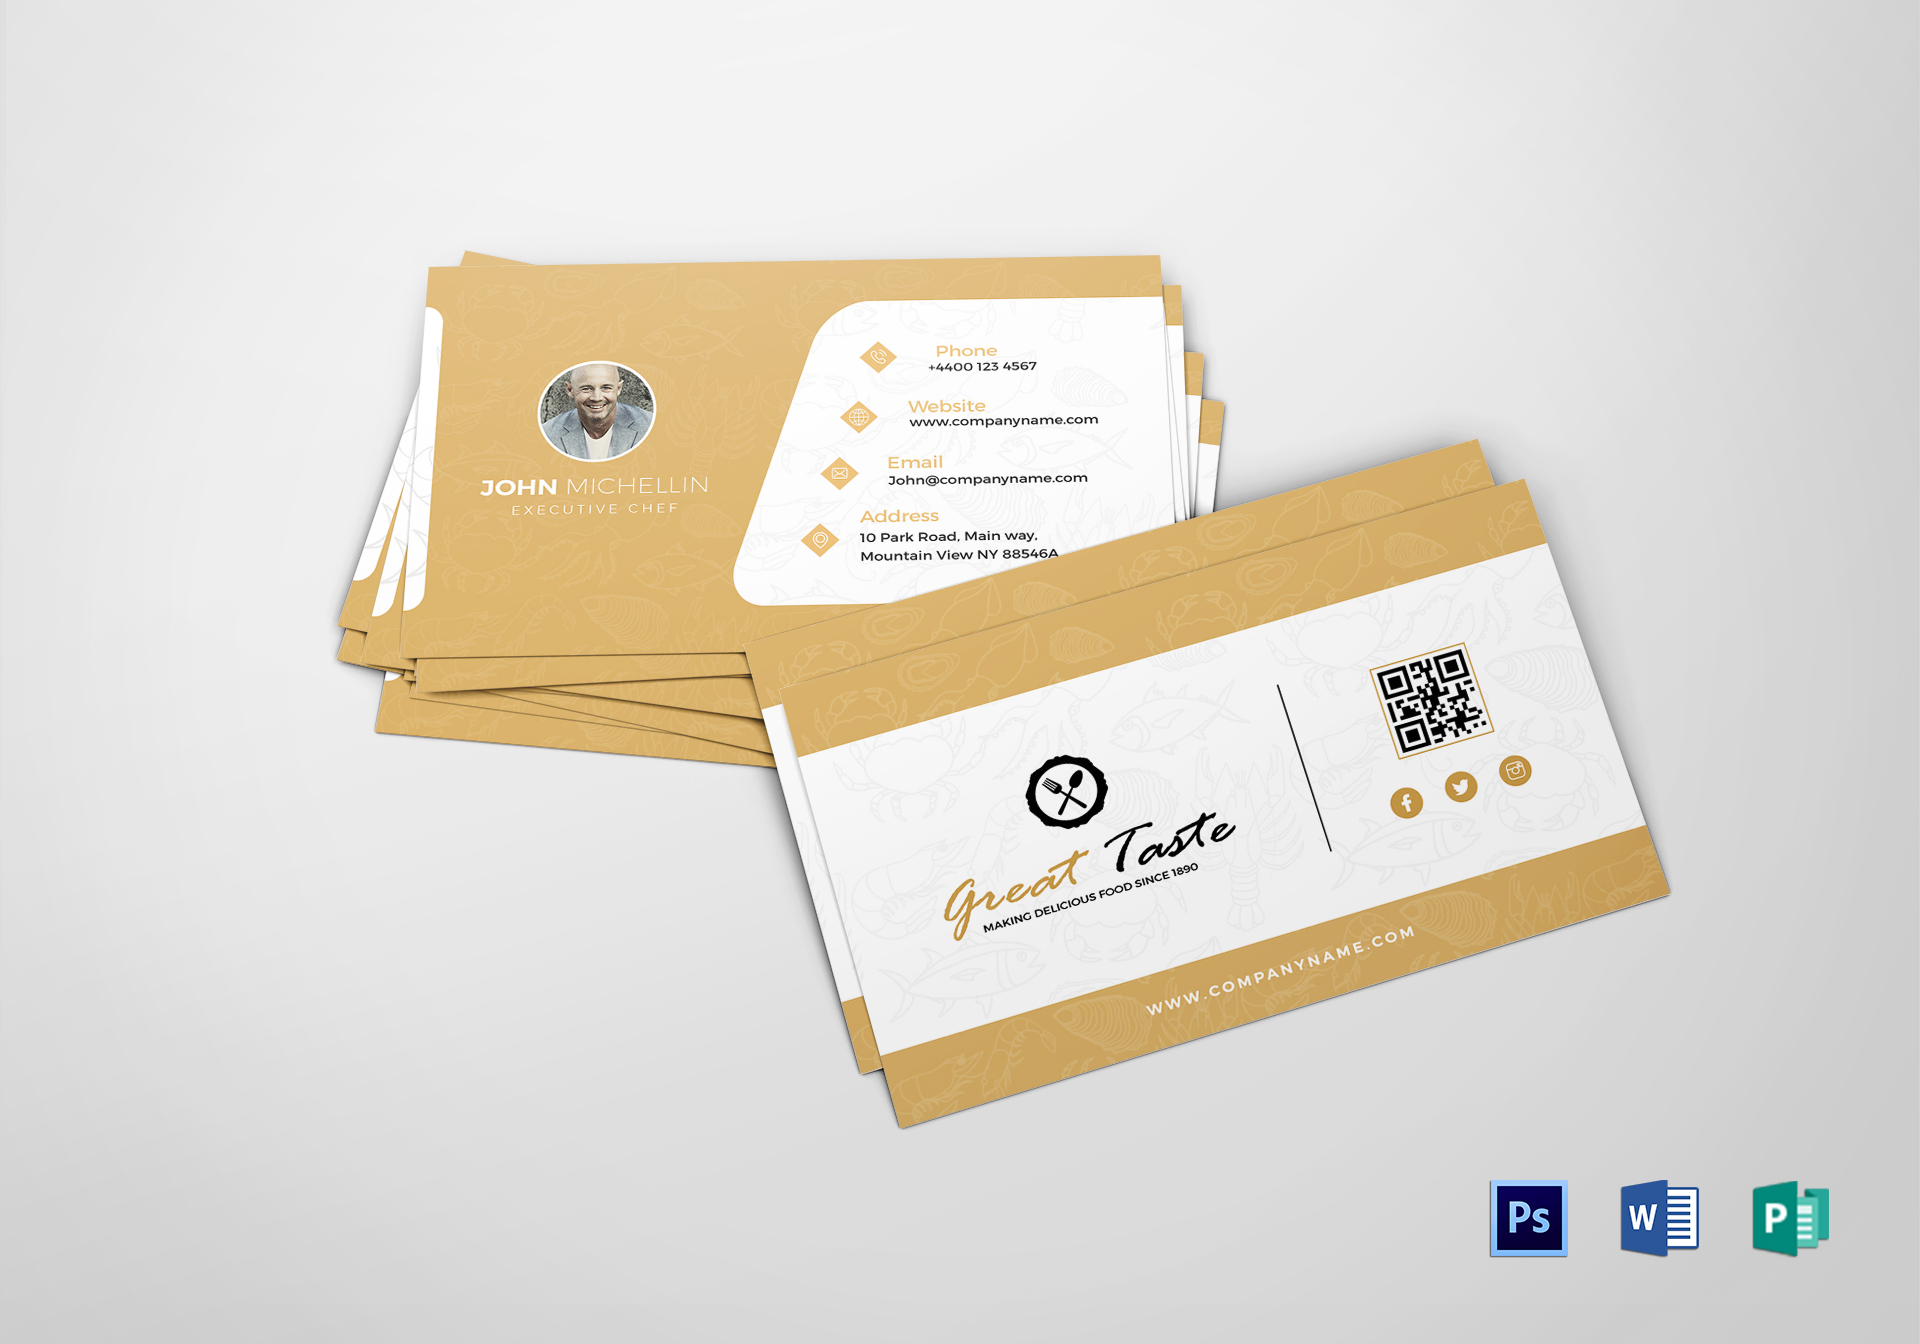 Restaurant chef business card design template in psd word publisher restaurant chef business card colourmoves